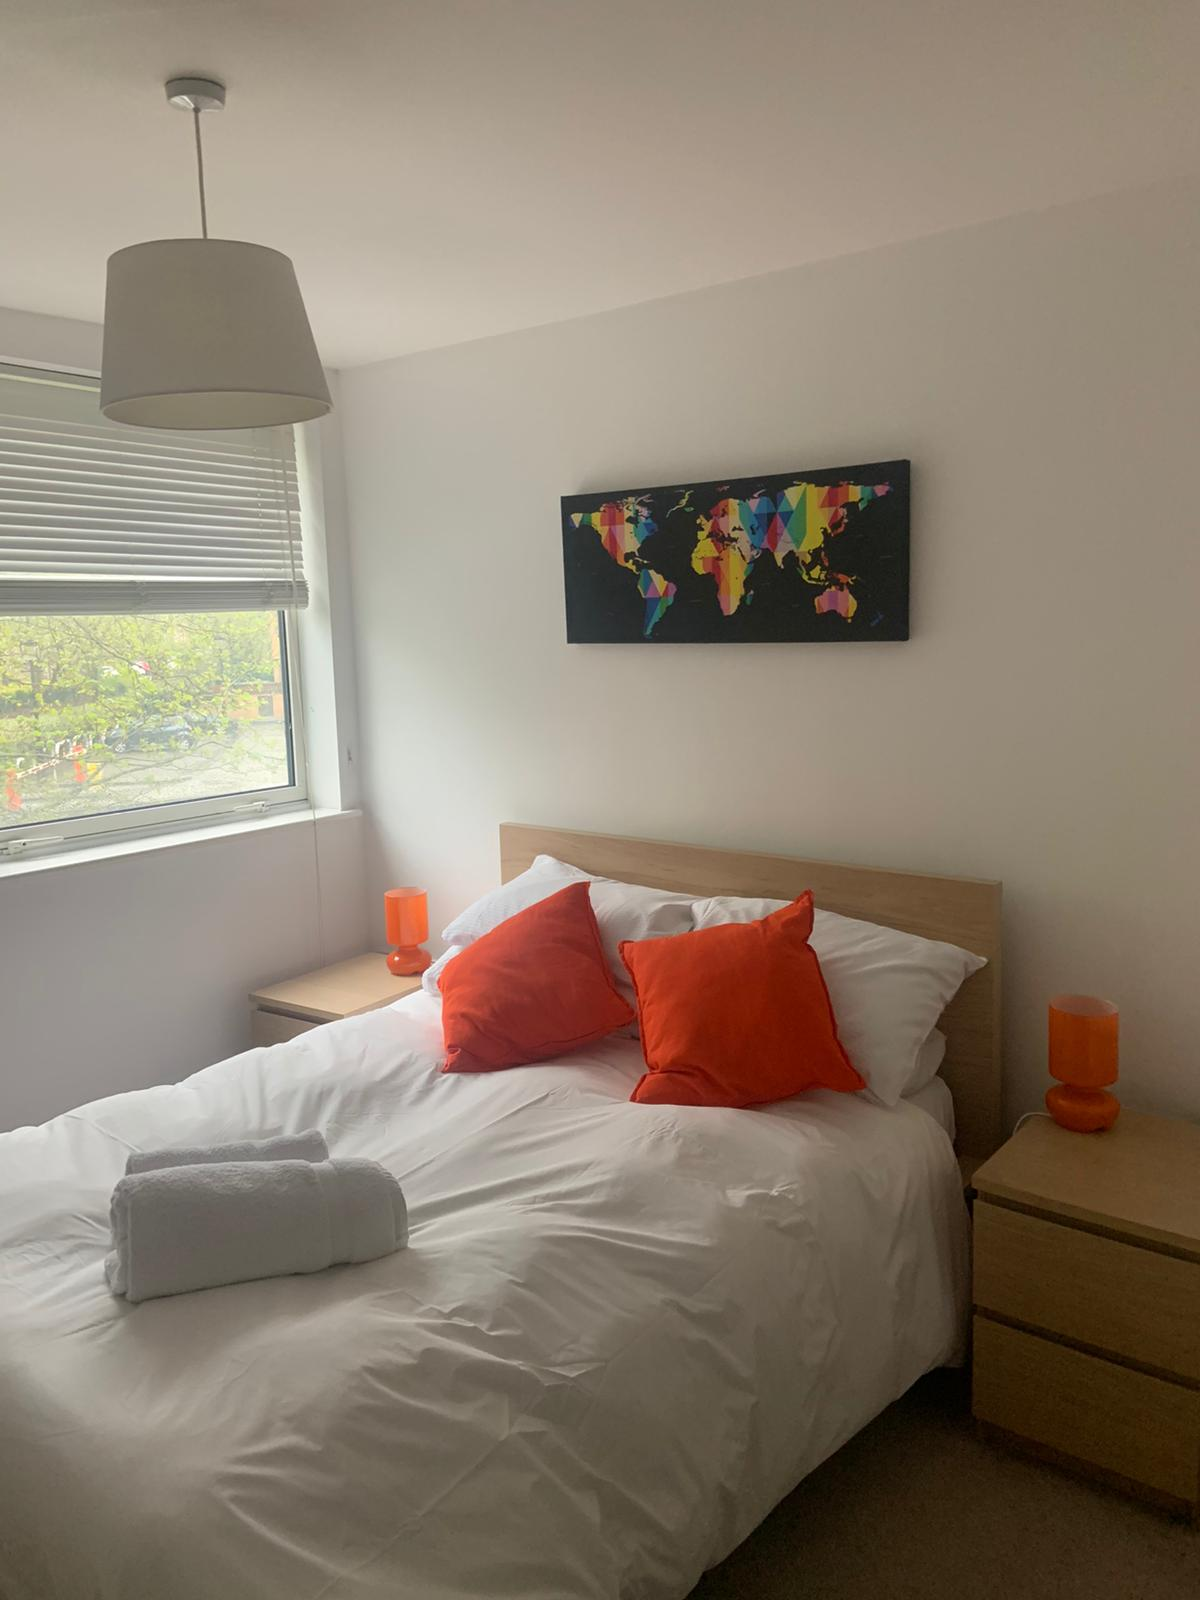 Bedding at Ocean Village Serviced Apartments, Ocean Village, Southampton - Citybase Apartments